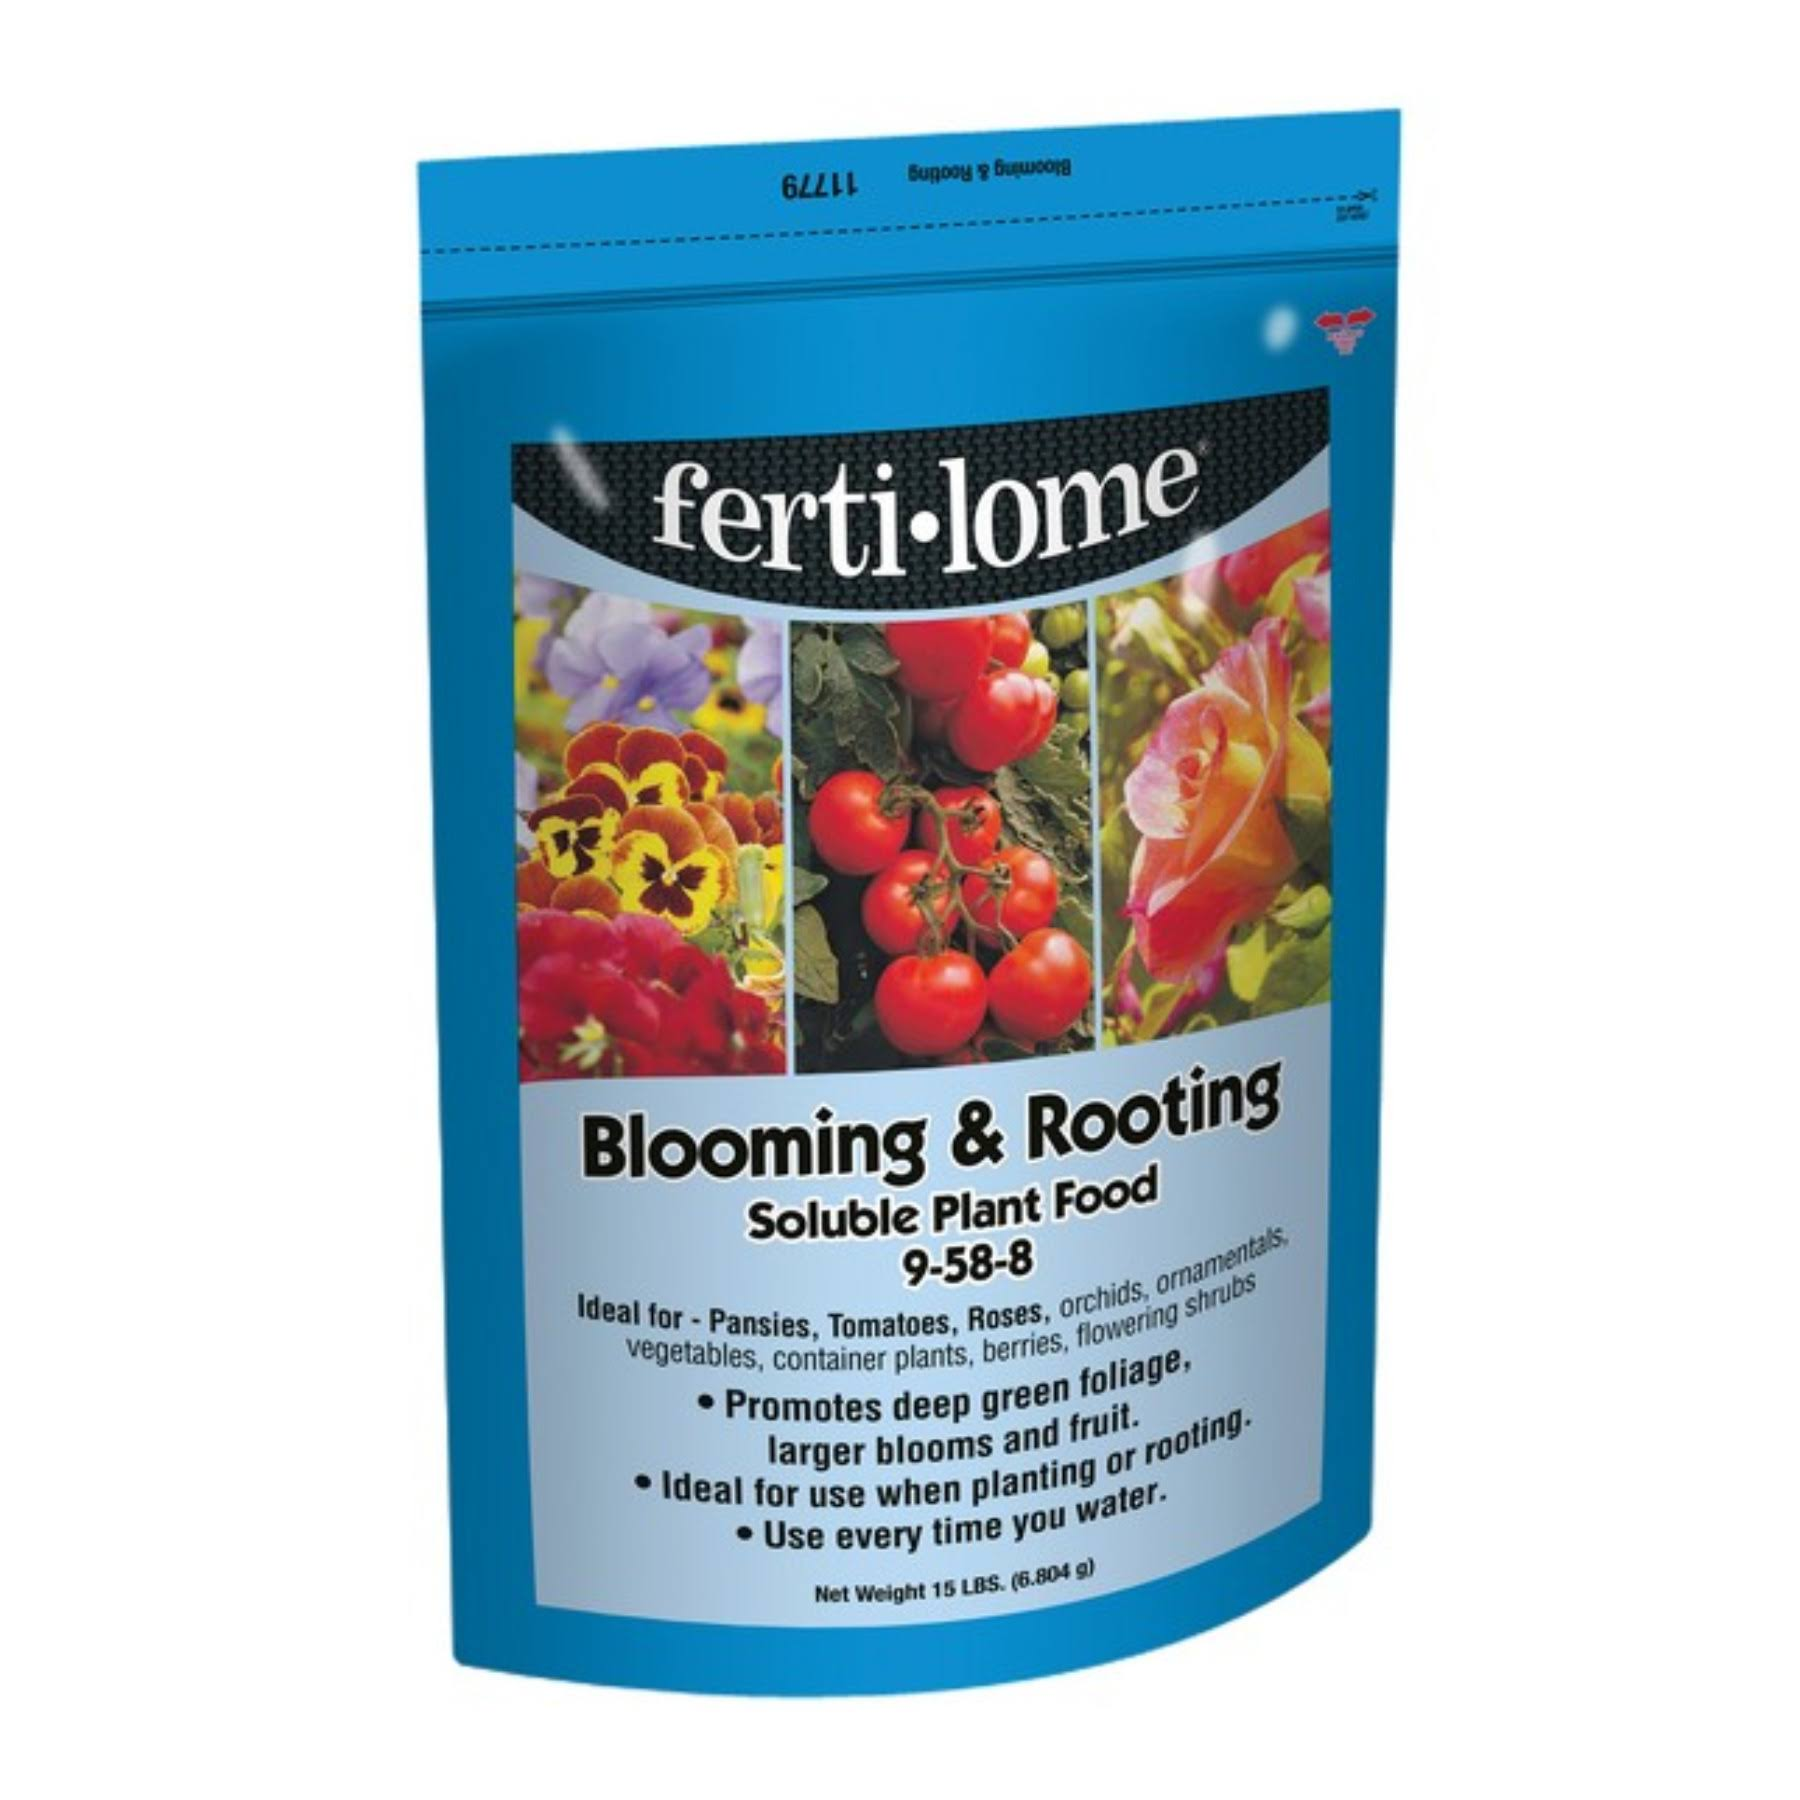 Fertilome 11779 15 lb Blooming and Rooting Soluble Plant Food